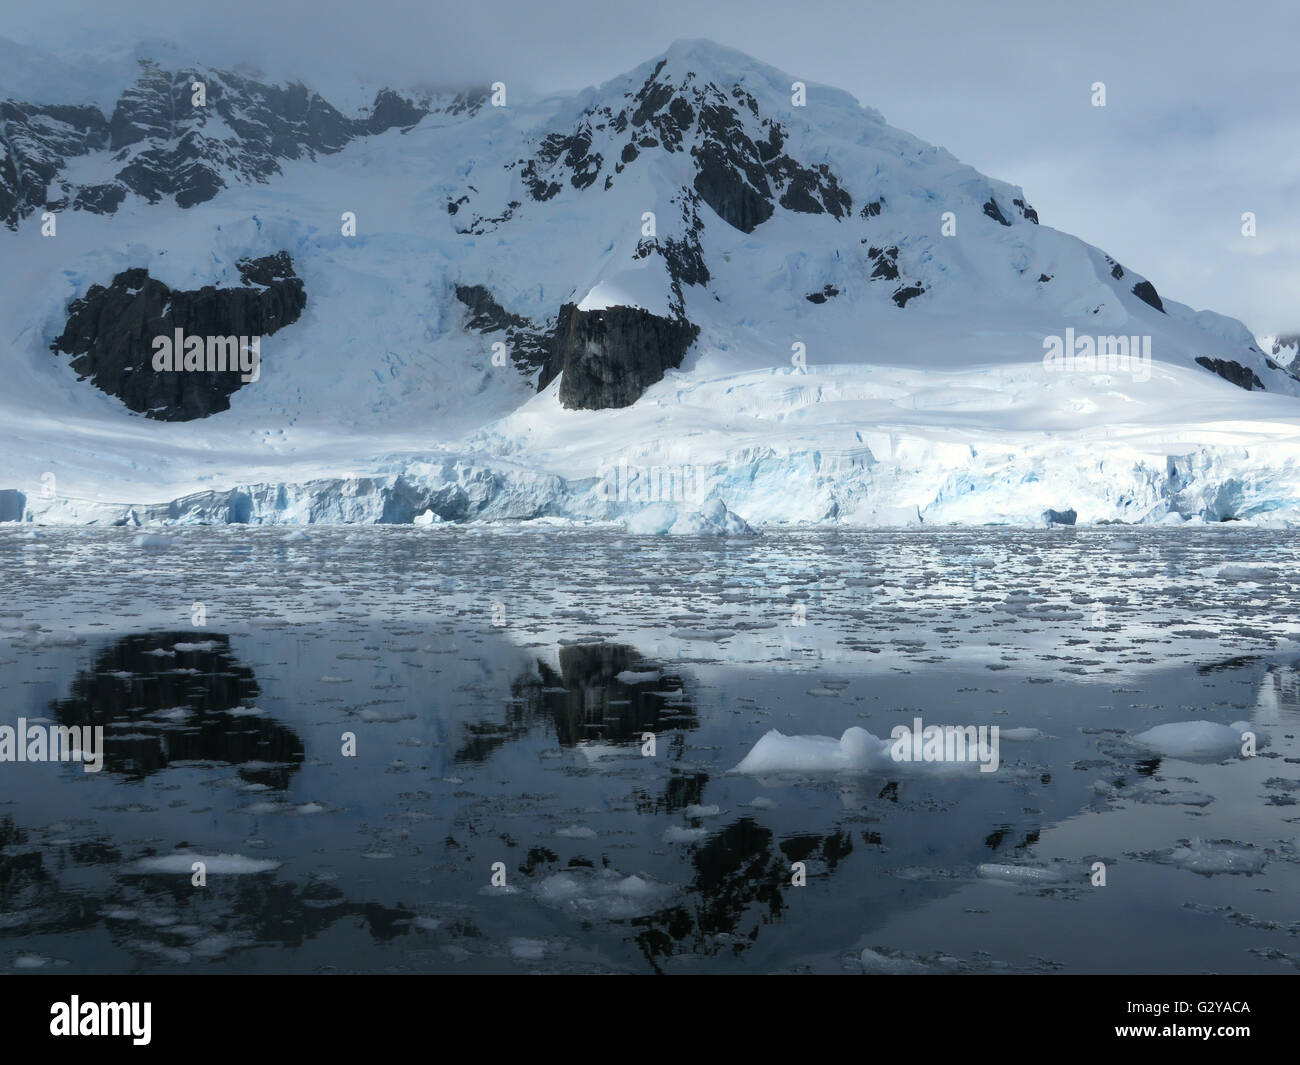 Antarctic mountain and sea shelves reflecting in the ocean waters - Stock Image